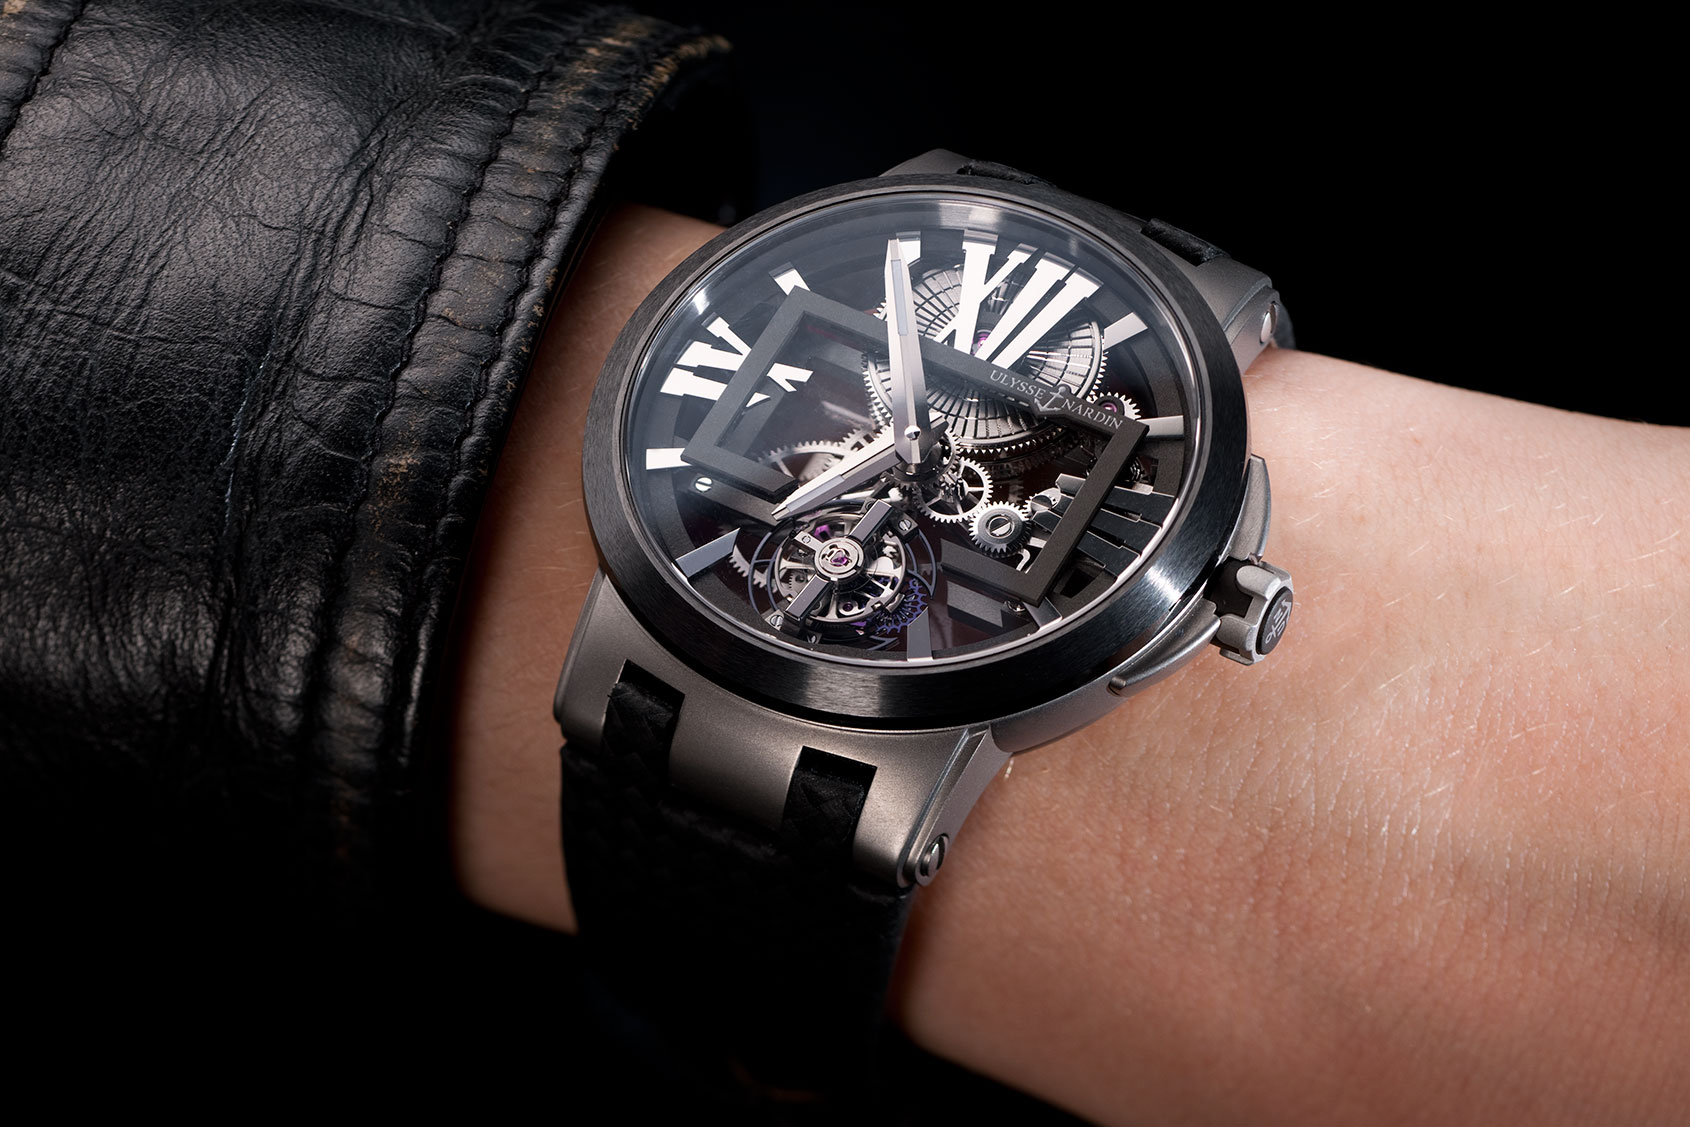 Uhren Luxusuhren Introducing: The Ulysse Nardin Executive Tourbillon - Time